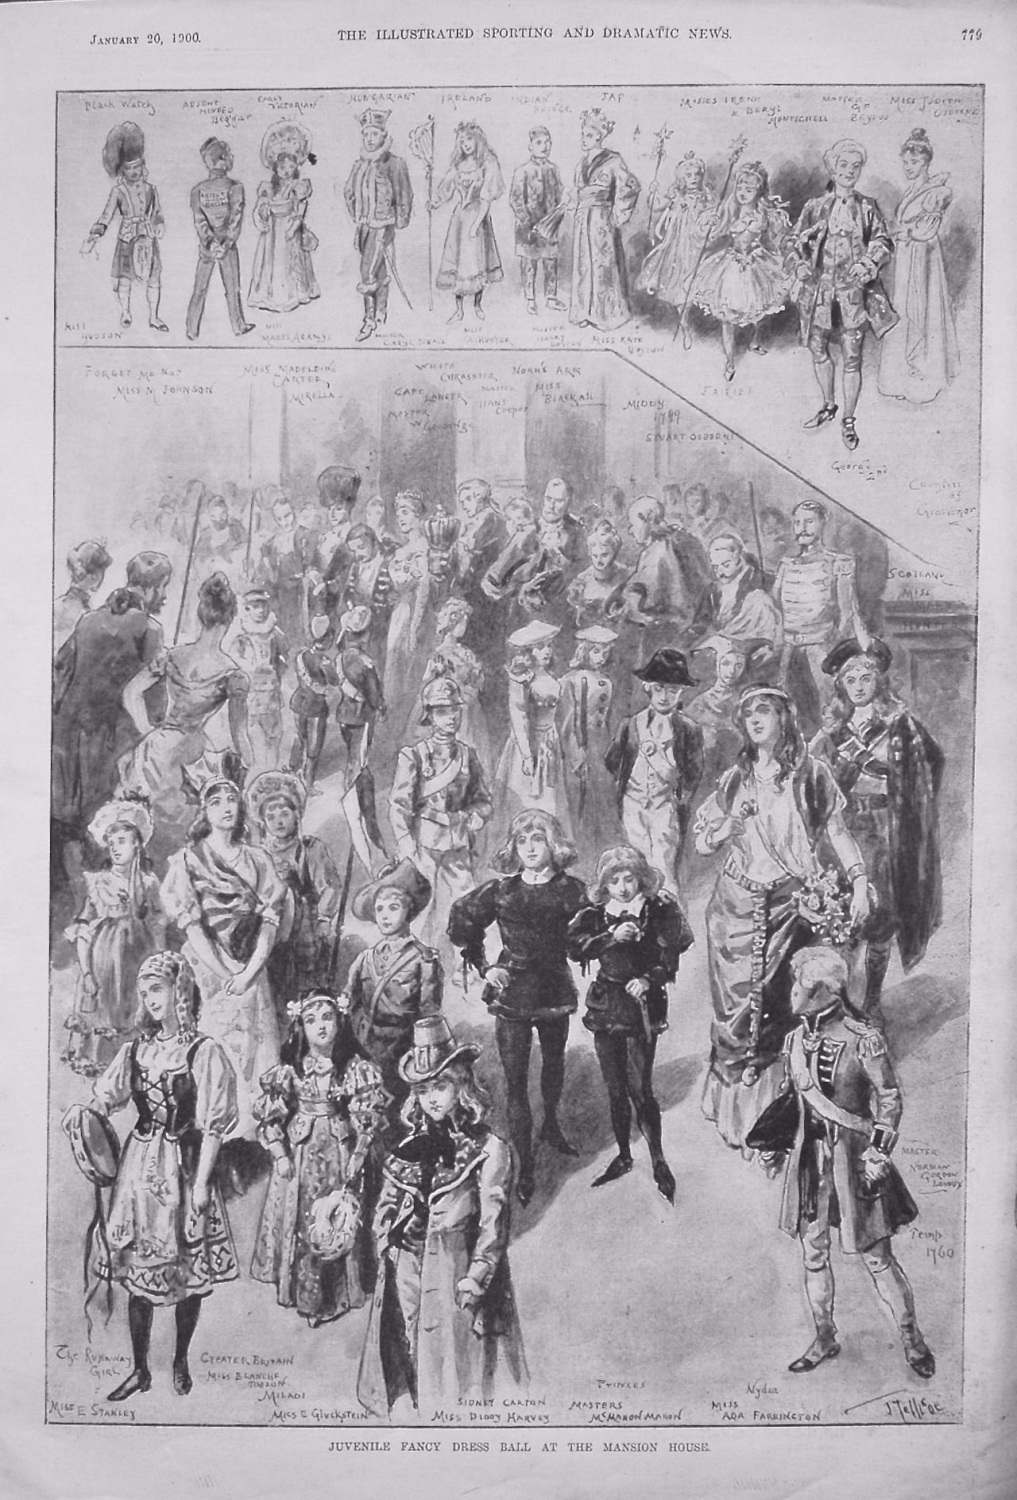 Juvenile Fancy Dress Ball at the Mansion House. 1900